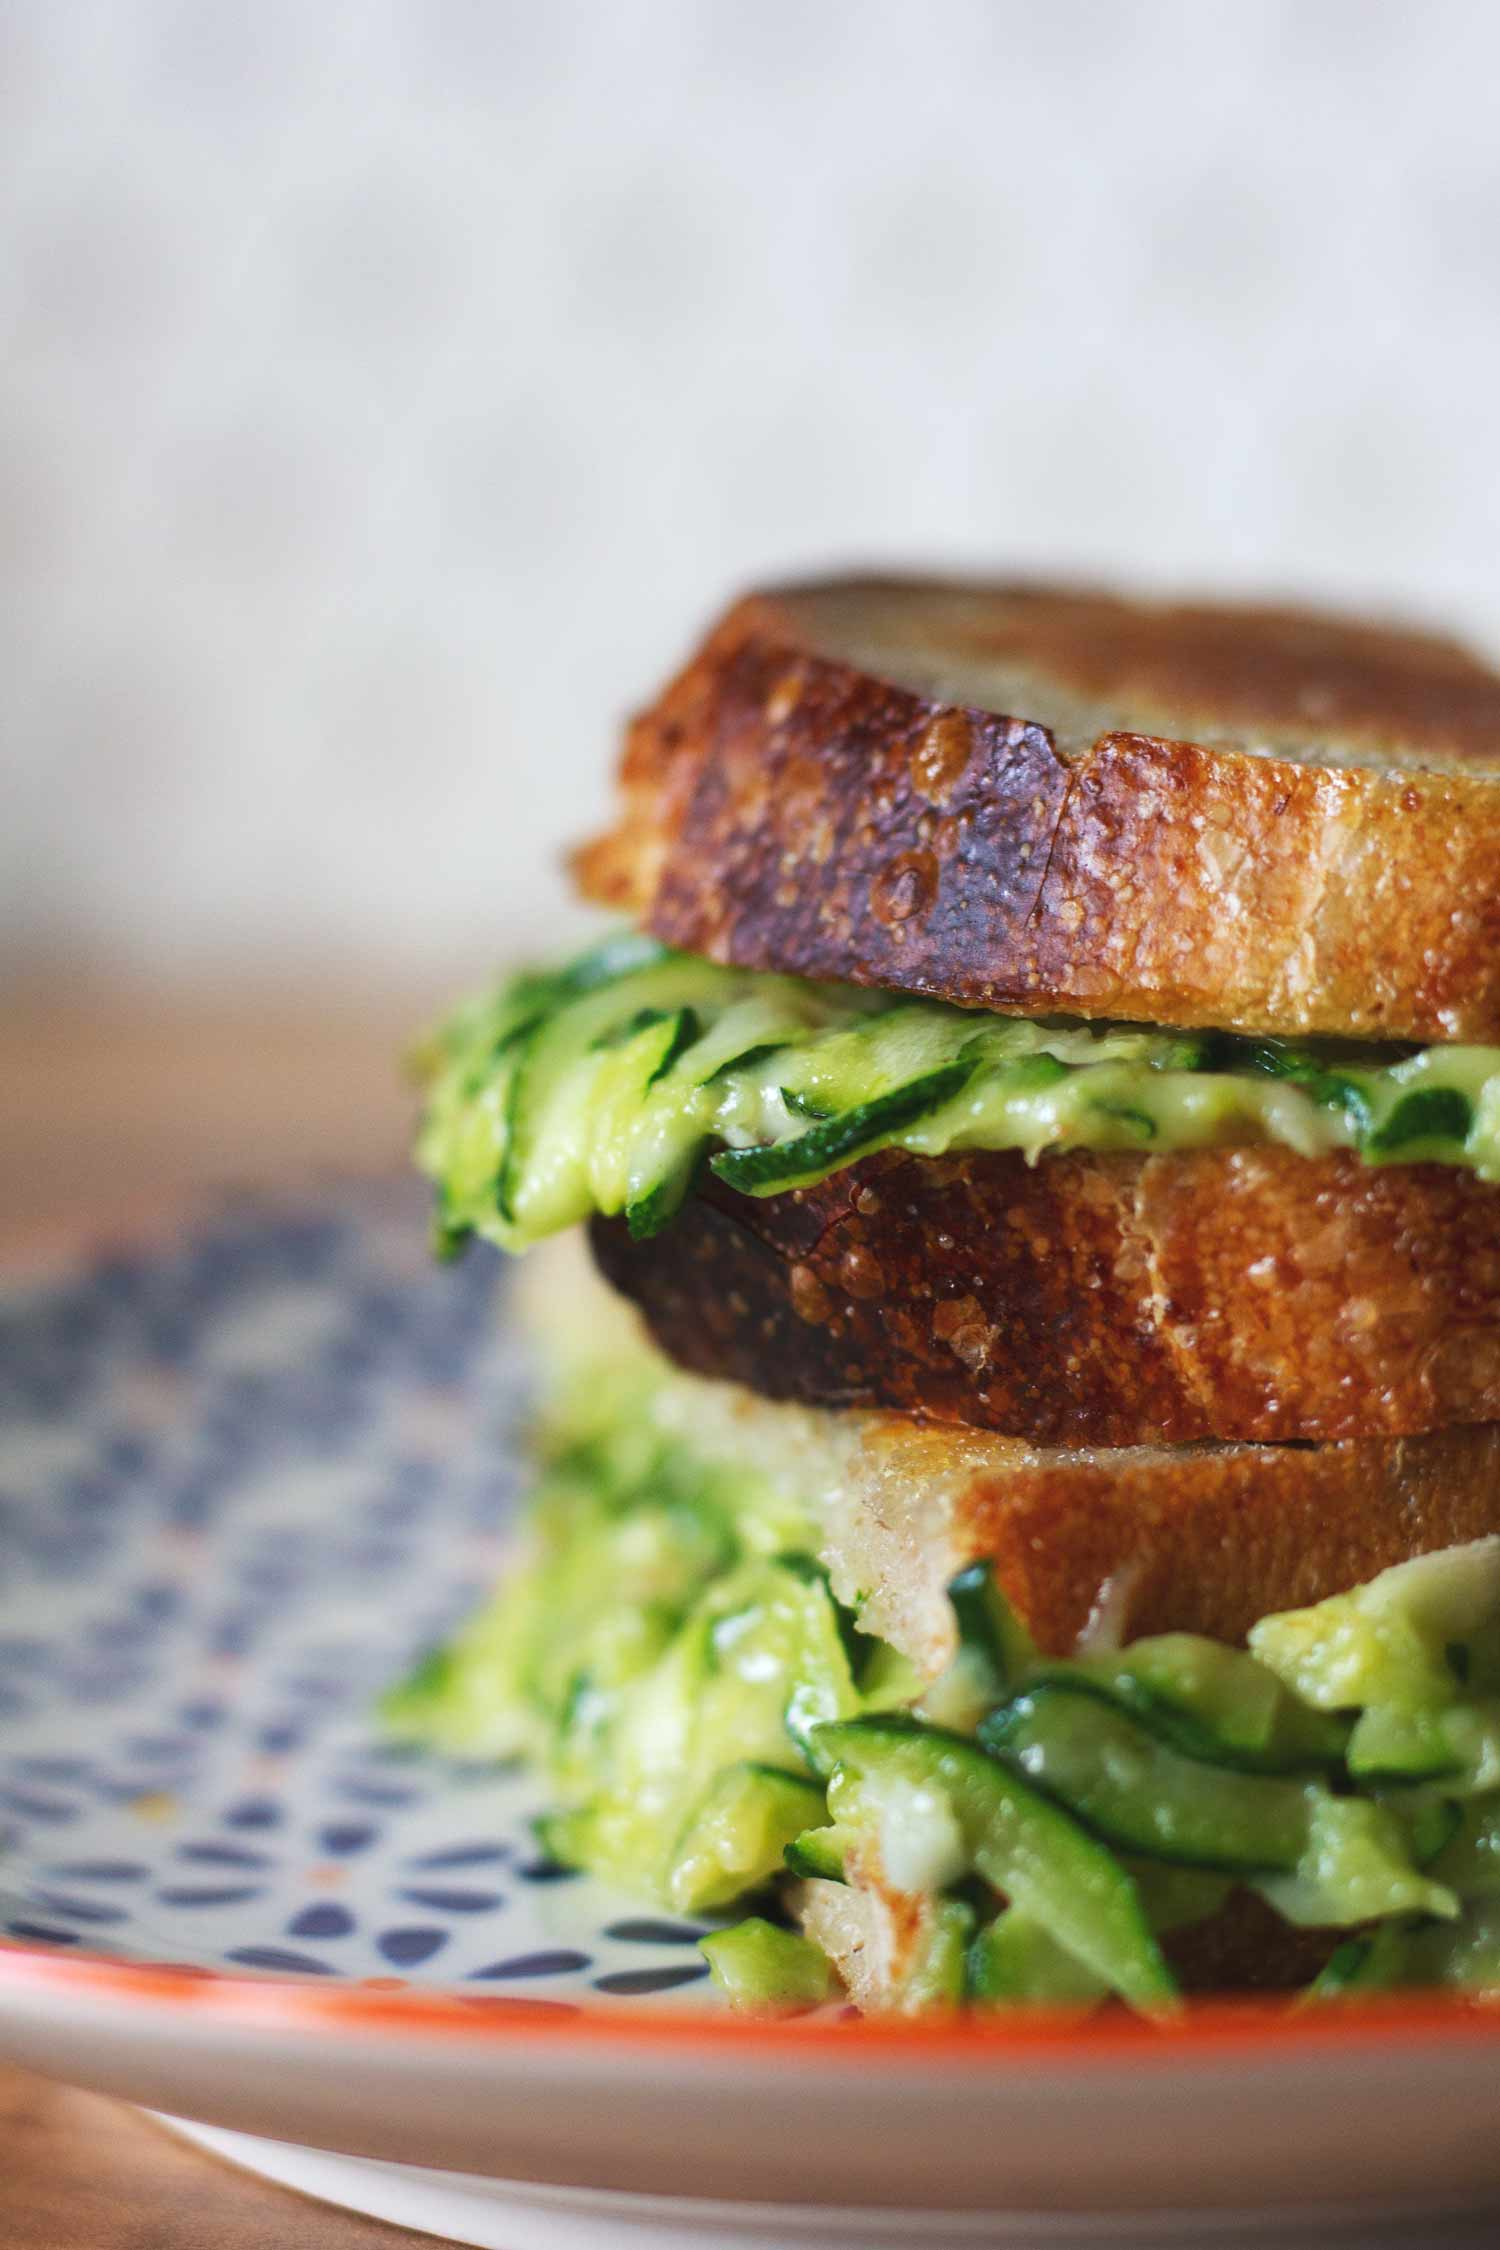 Courgette grilled cheese